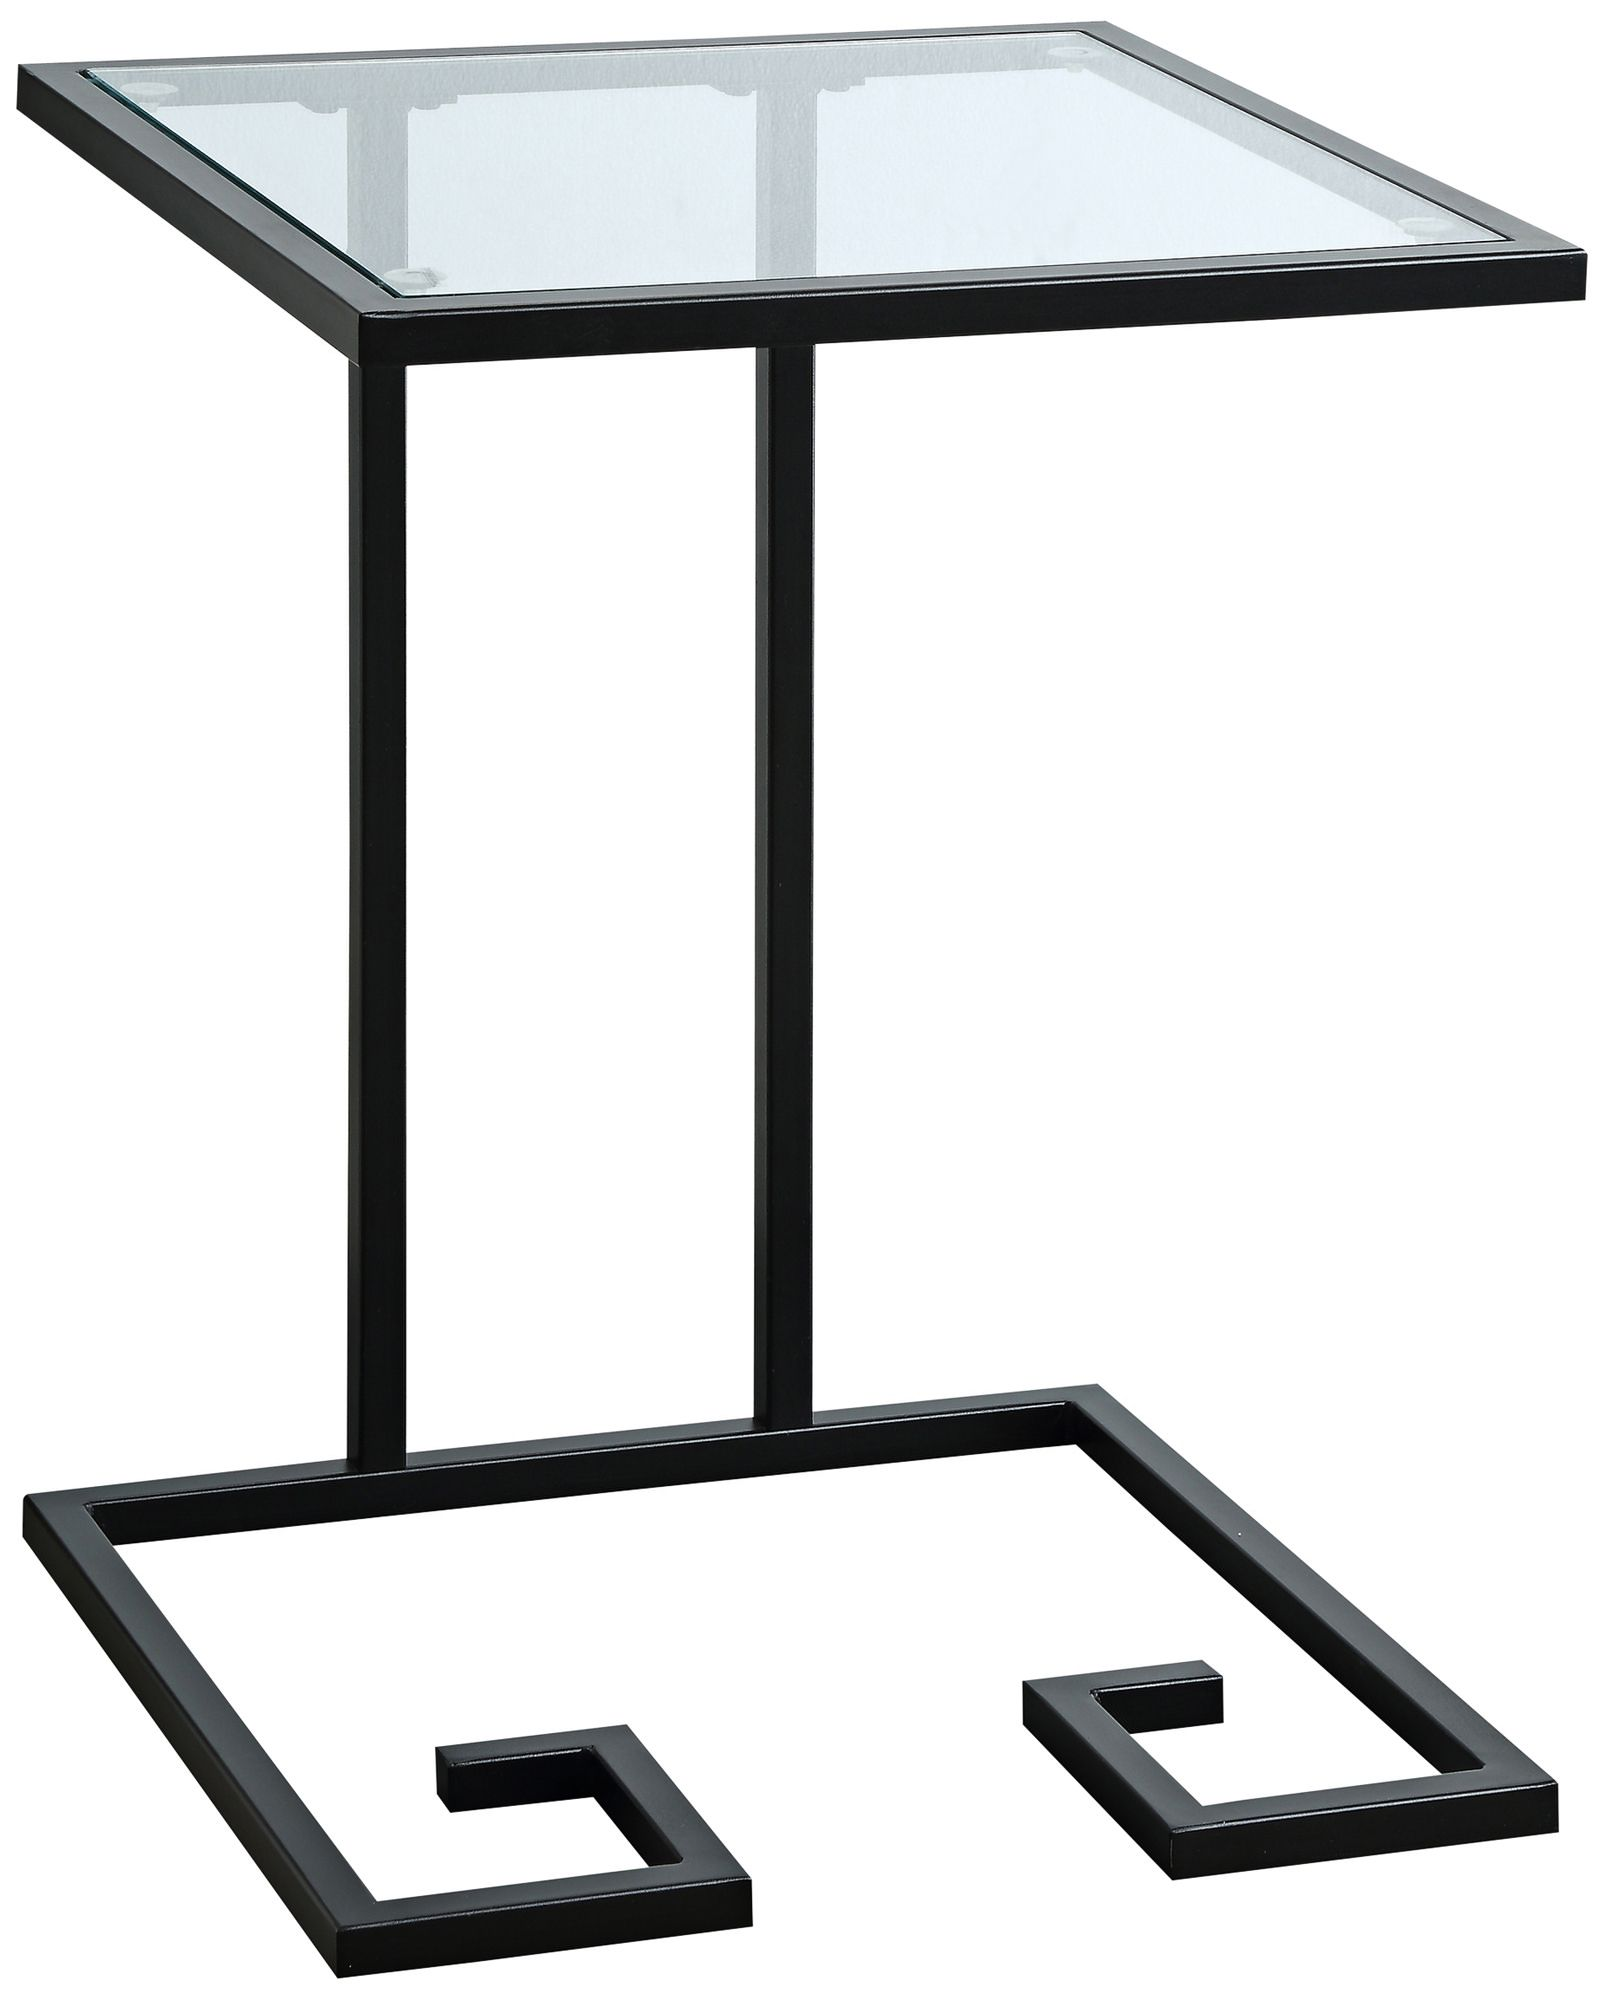 Greek Key Glass Top And Black Metal C Shaped Side Table